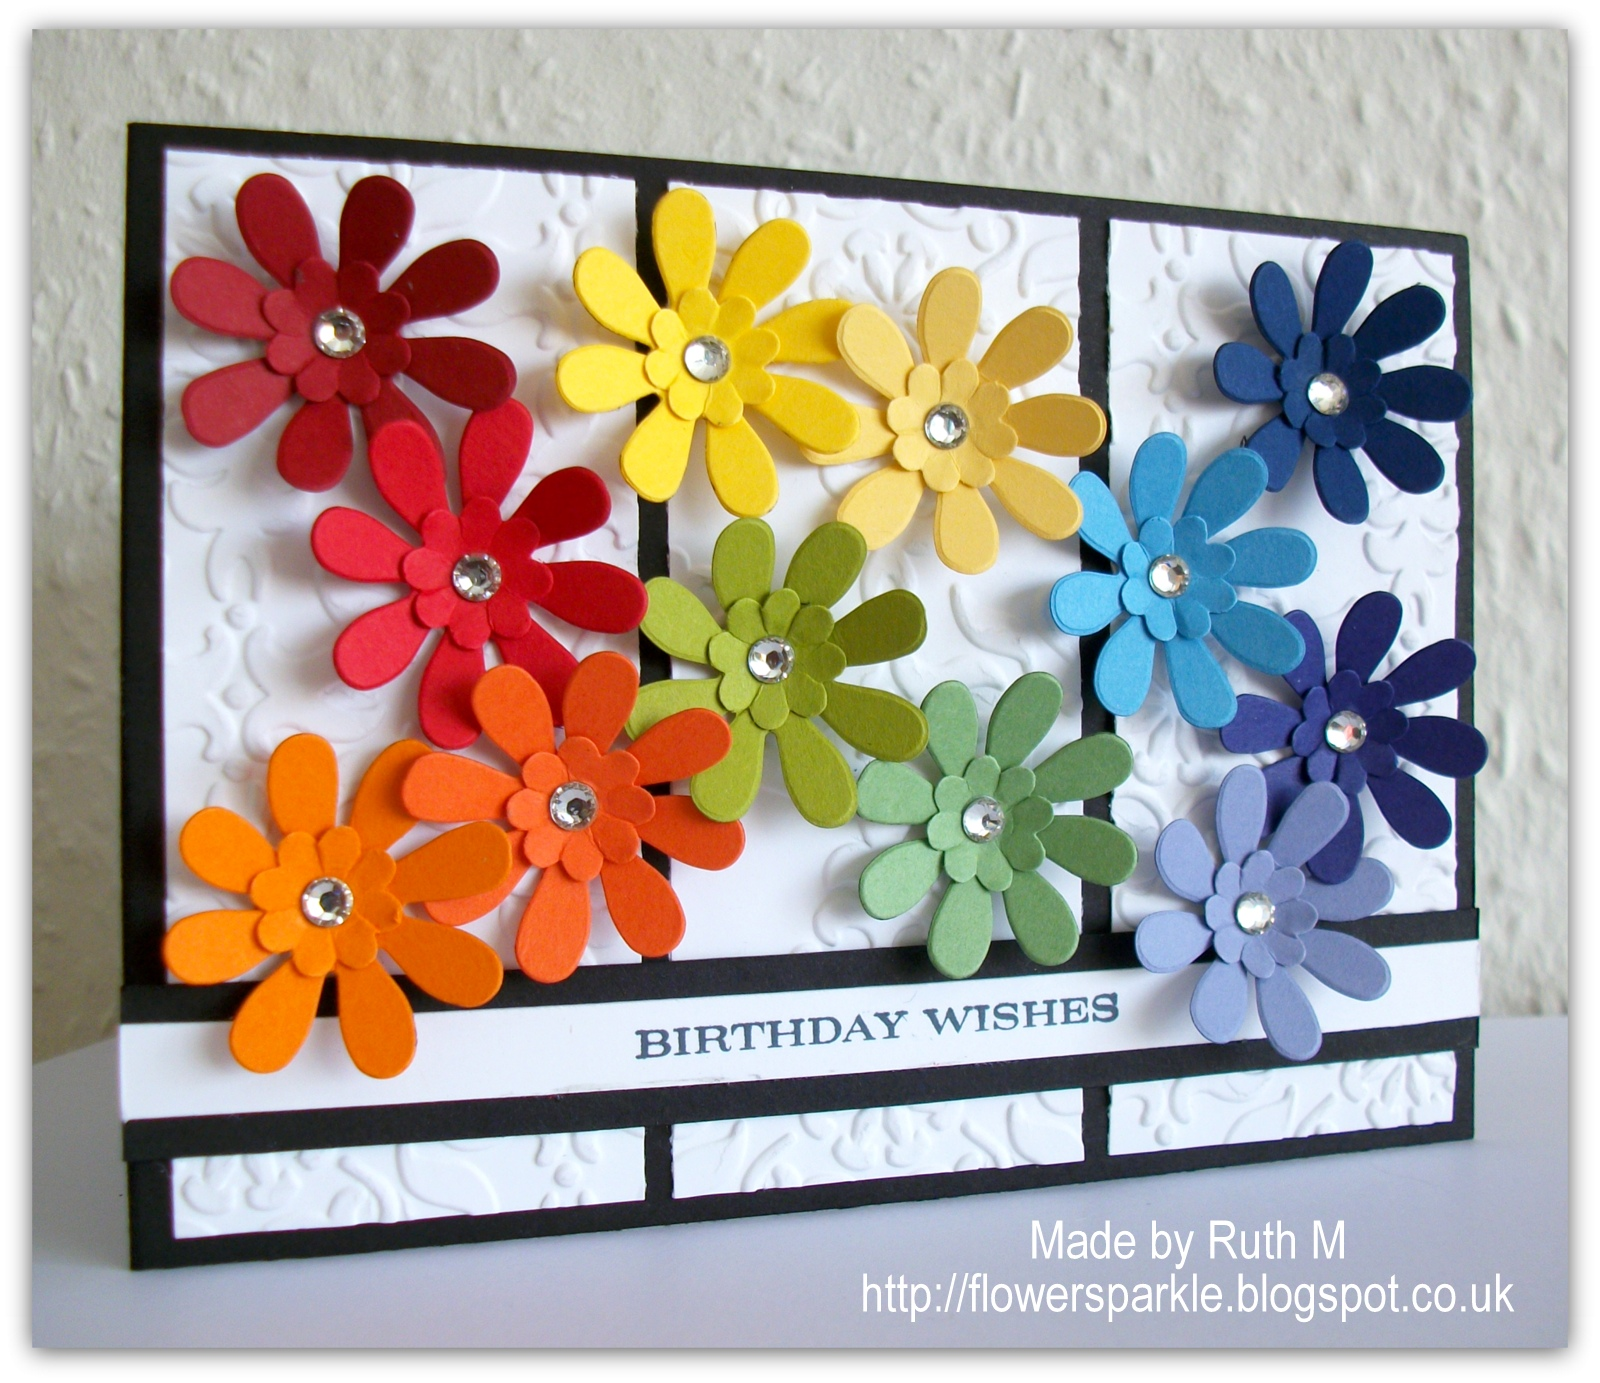 Flower sparkle roy g biv flowers birthday wishes card simply the birthday wishes wording is from a stamp in the happiest birthday wishes set ive performed surgery on the stamp and lopped off the a little bit izmirmasajfo Choice Image